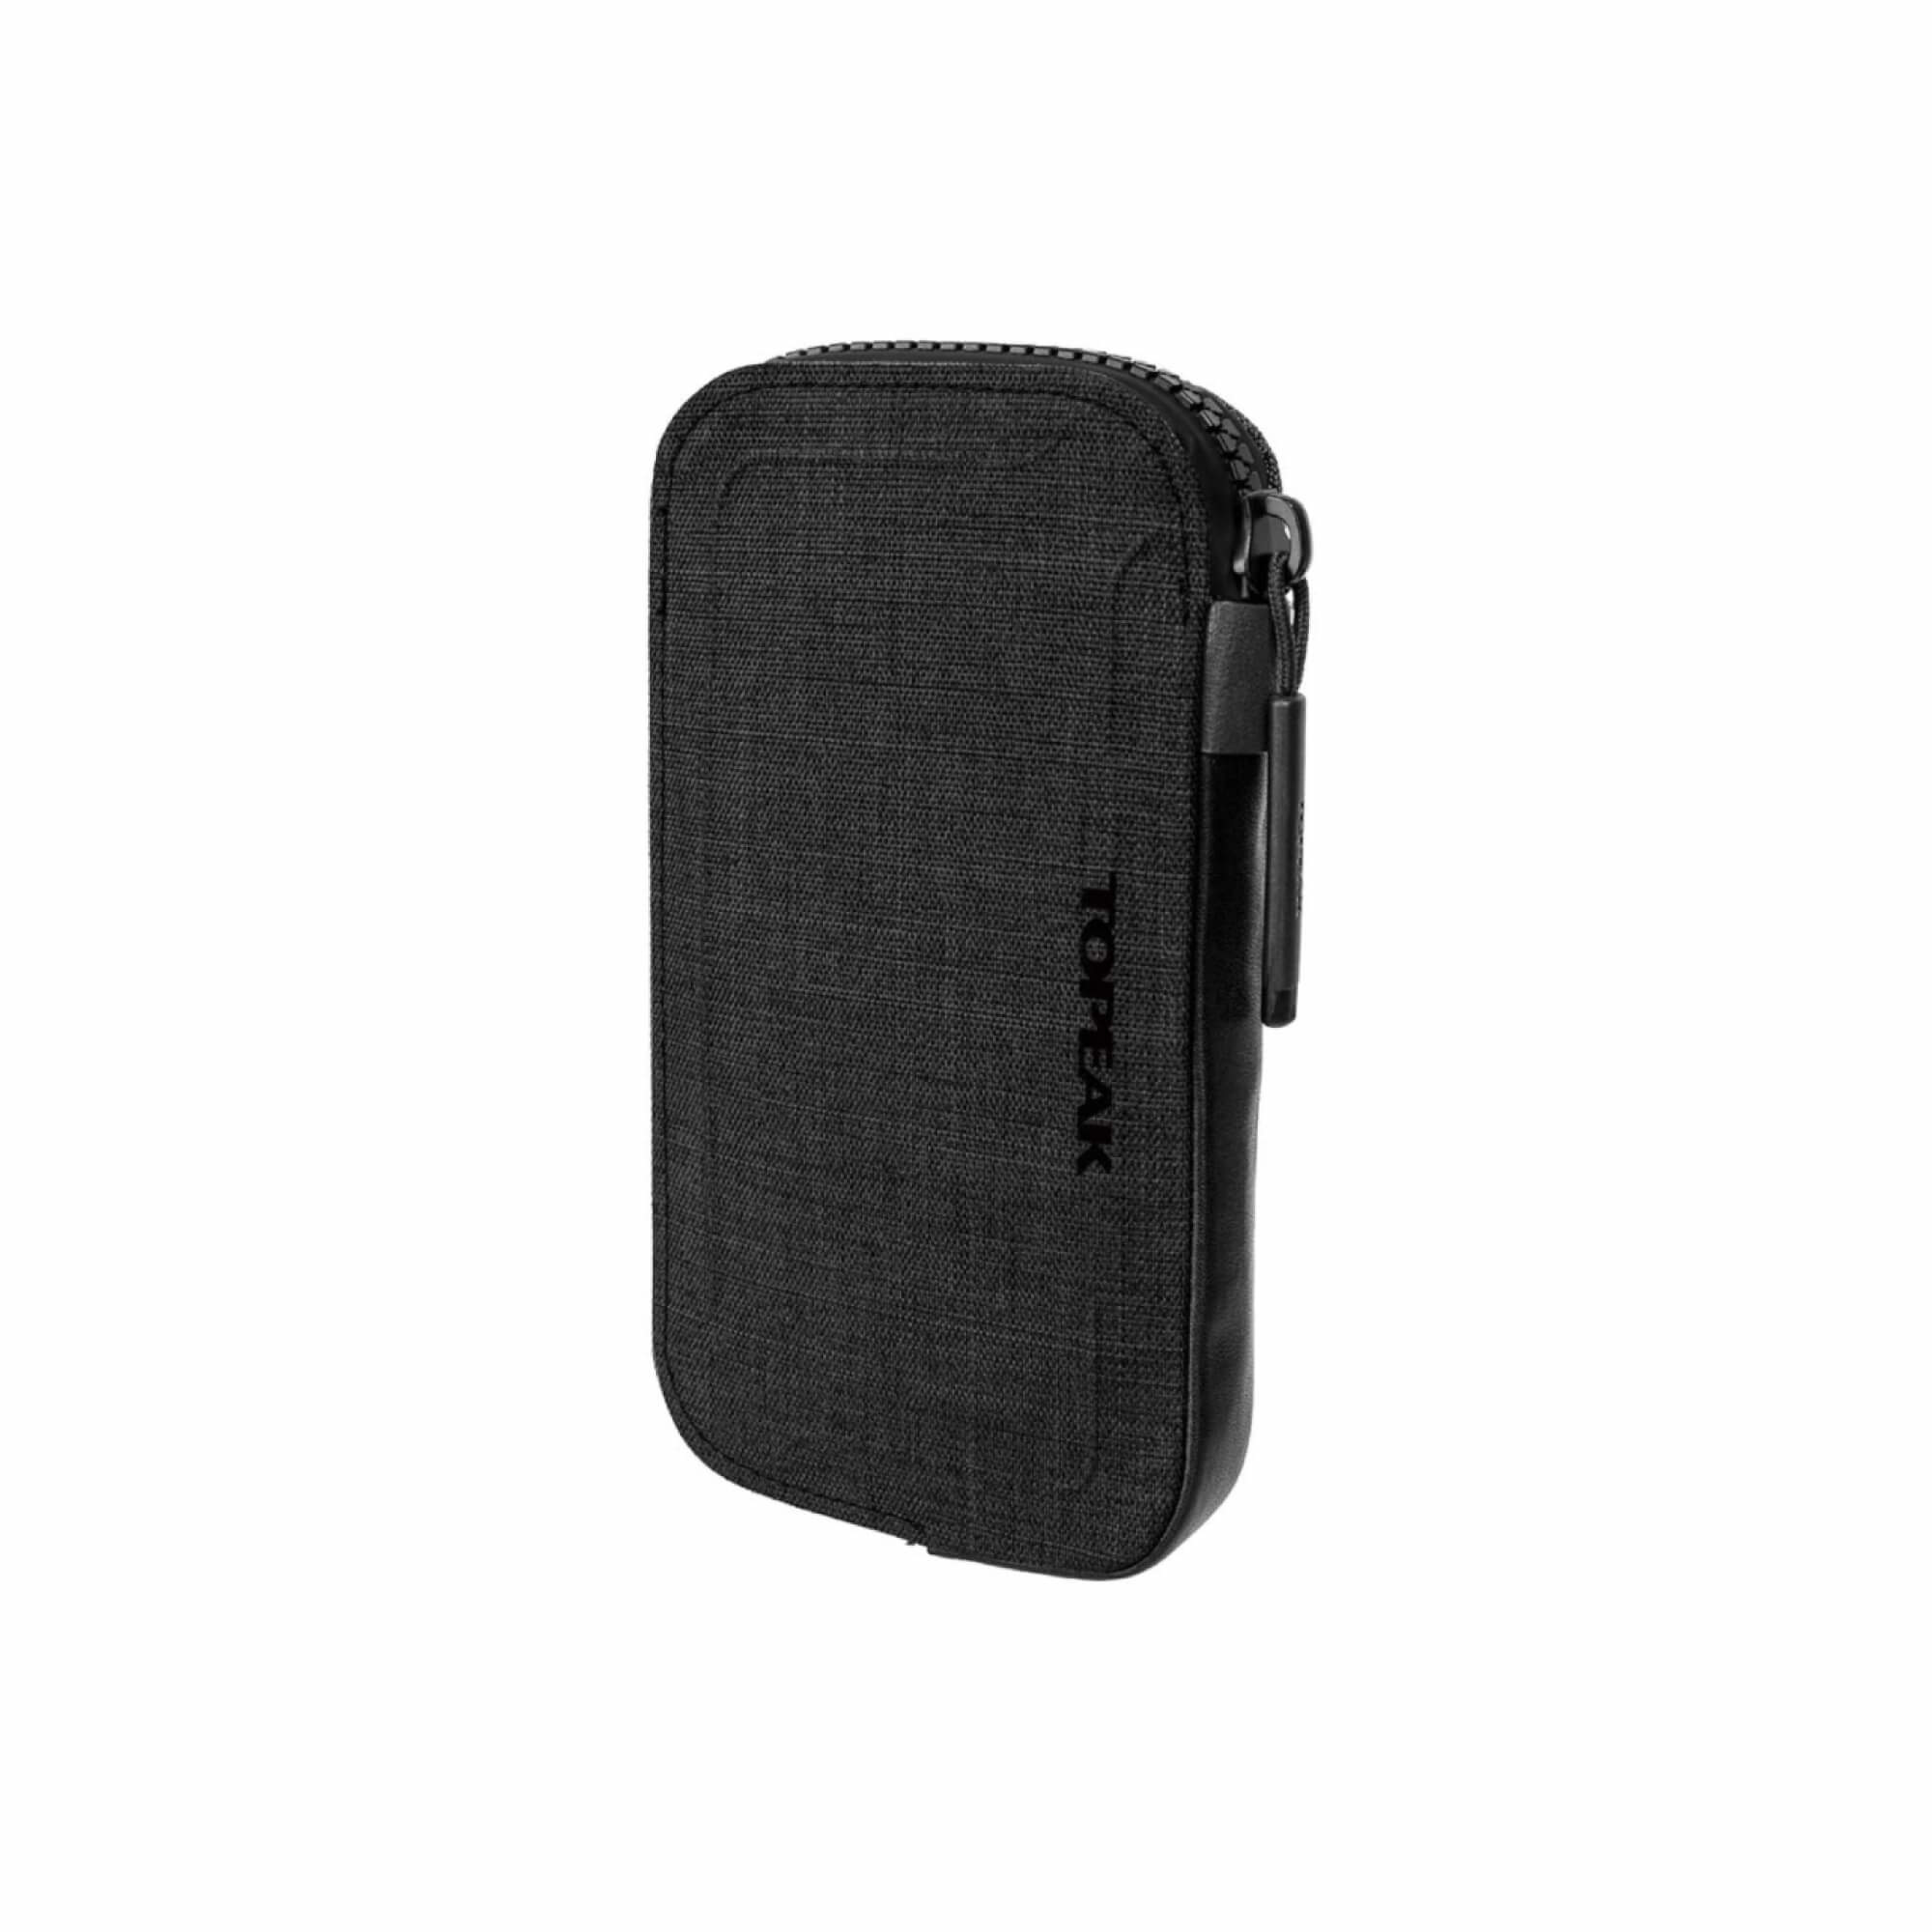 "Cycling Wallet 4.7"", Black-1"